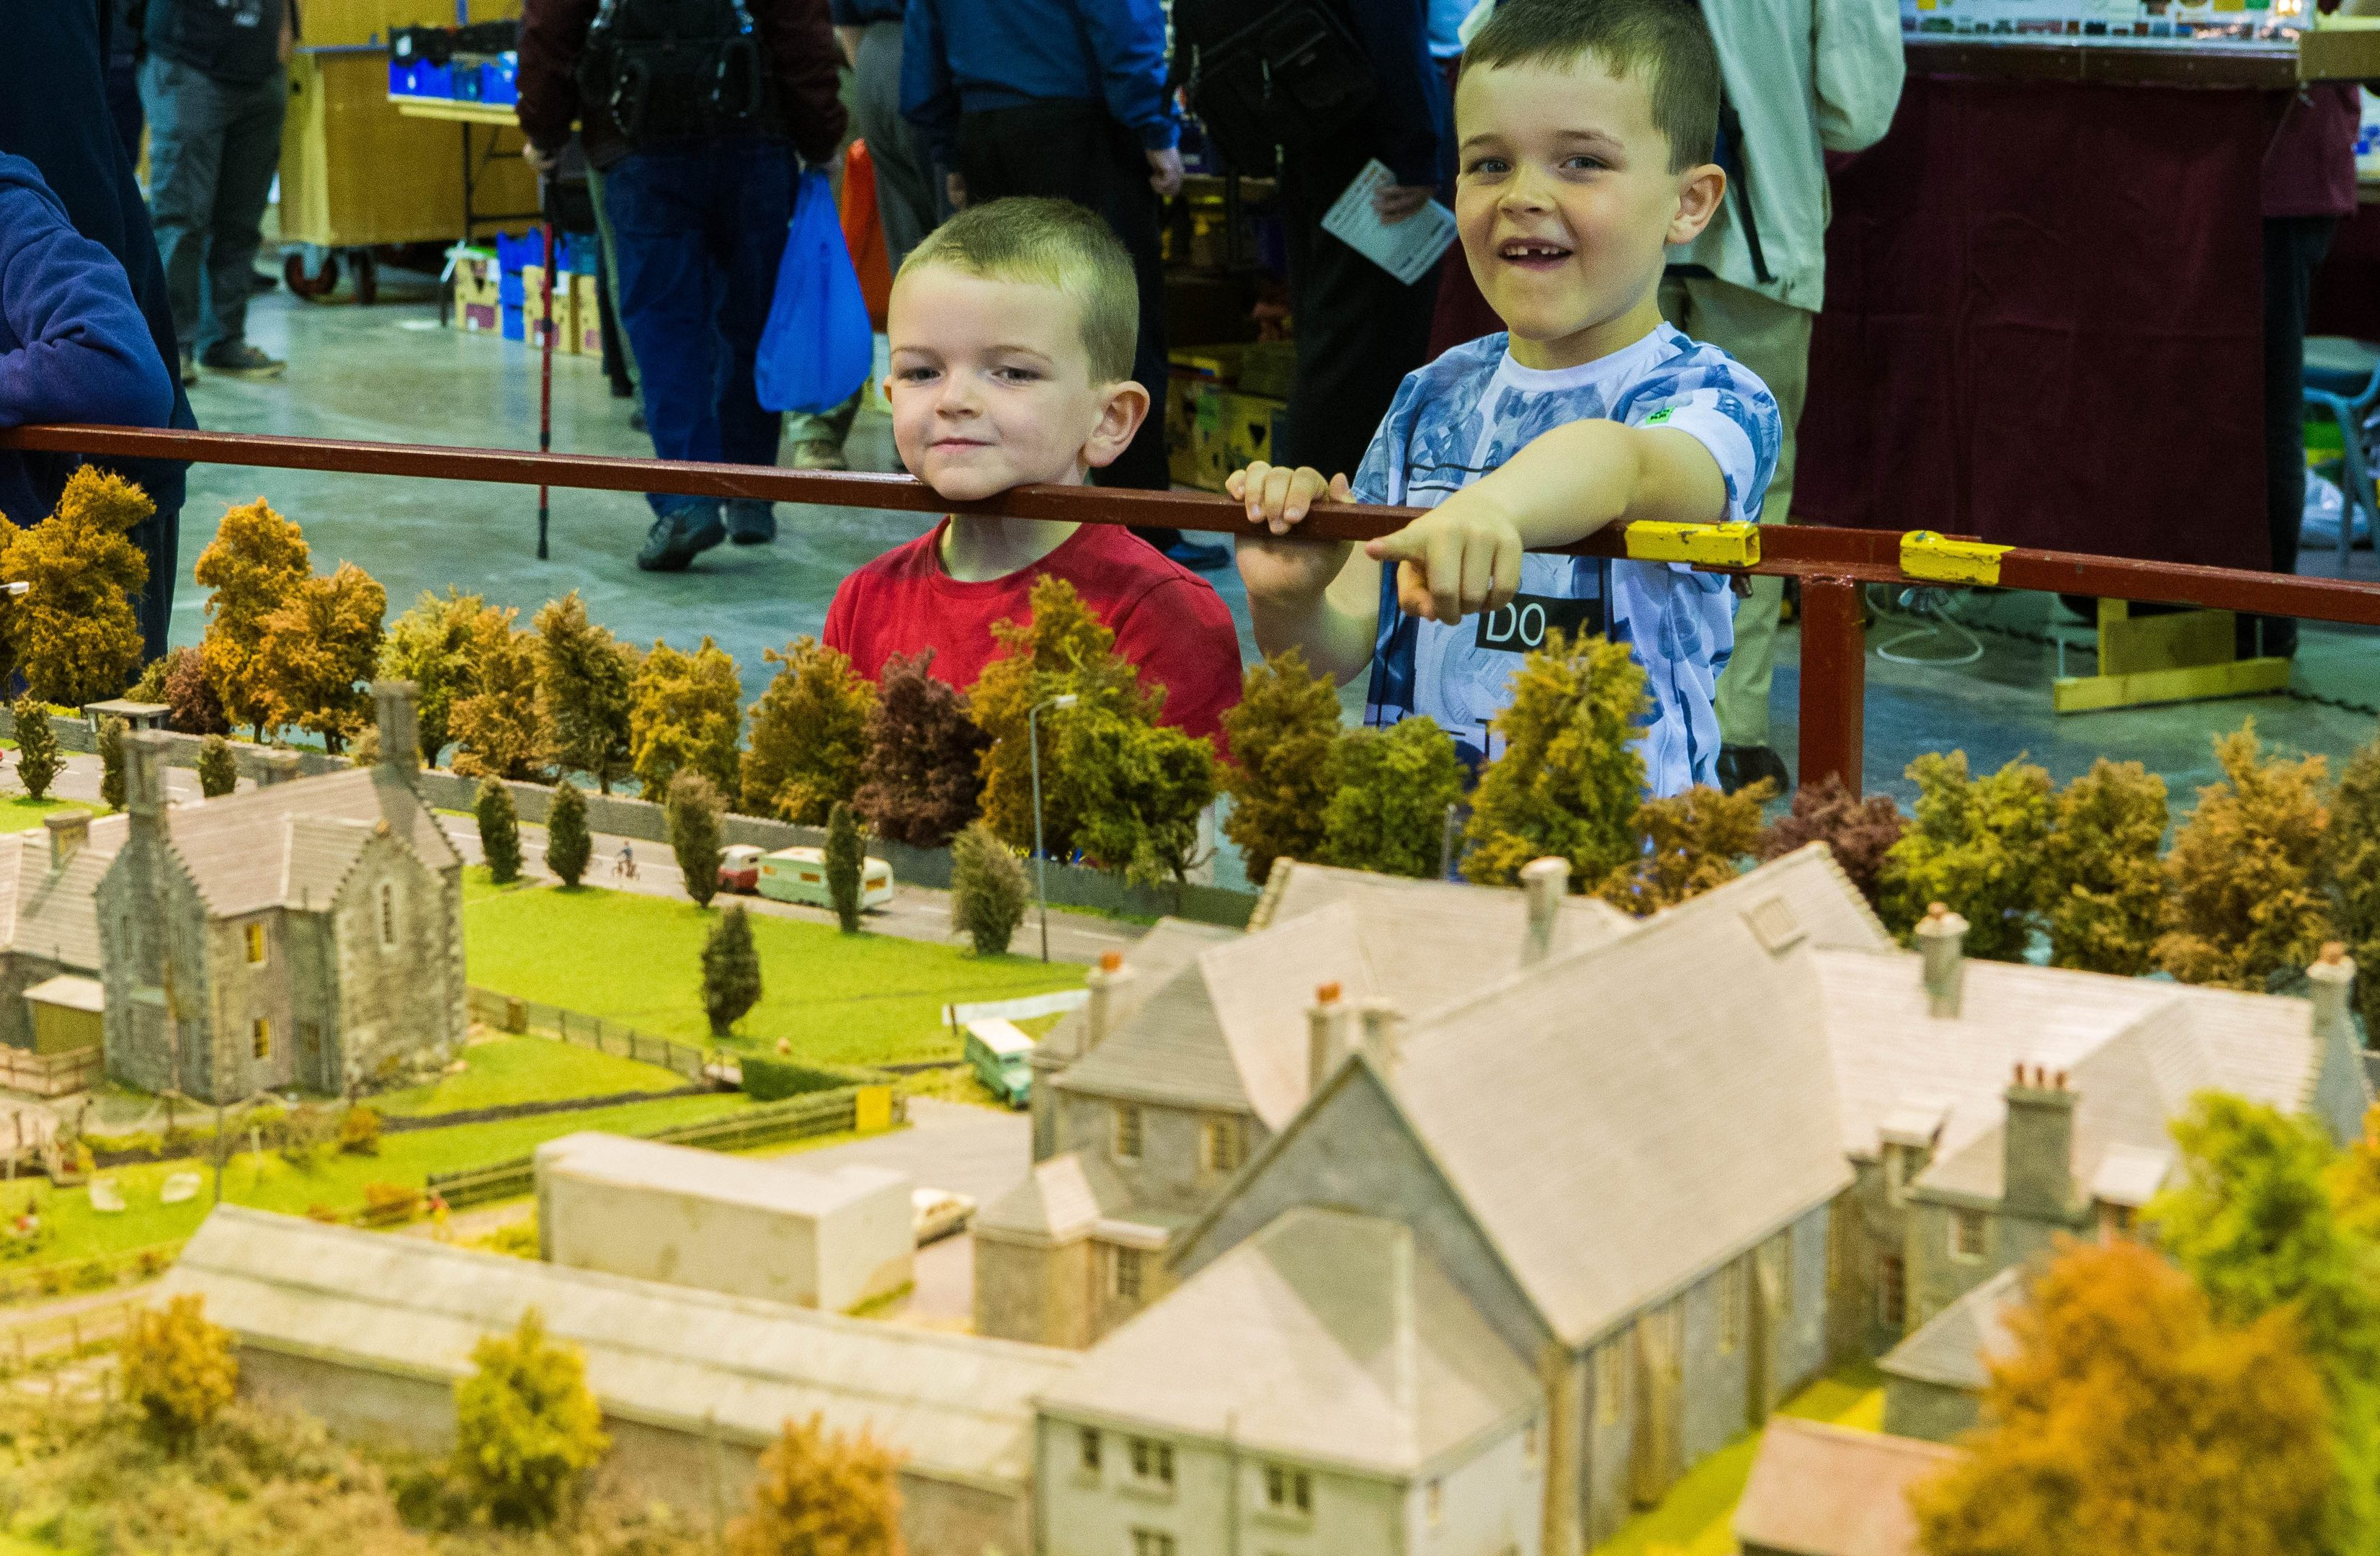 Conlan Turner (5) is shown the Blair Atholl rail model by brother Bryn Turner (6).